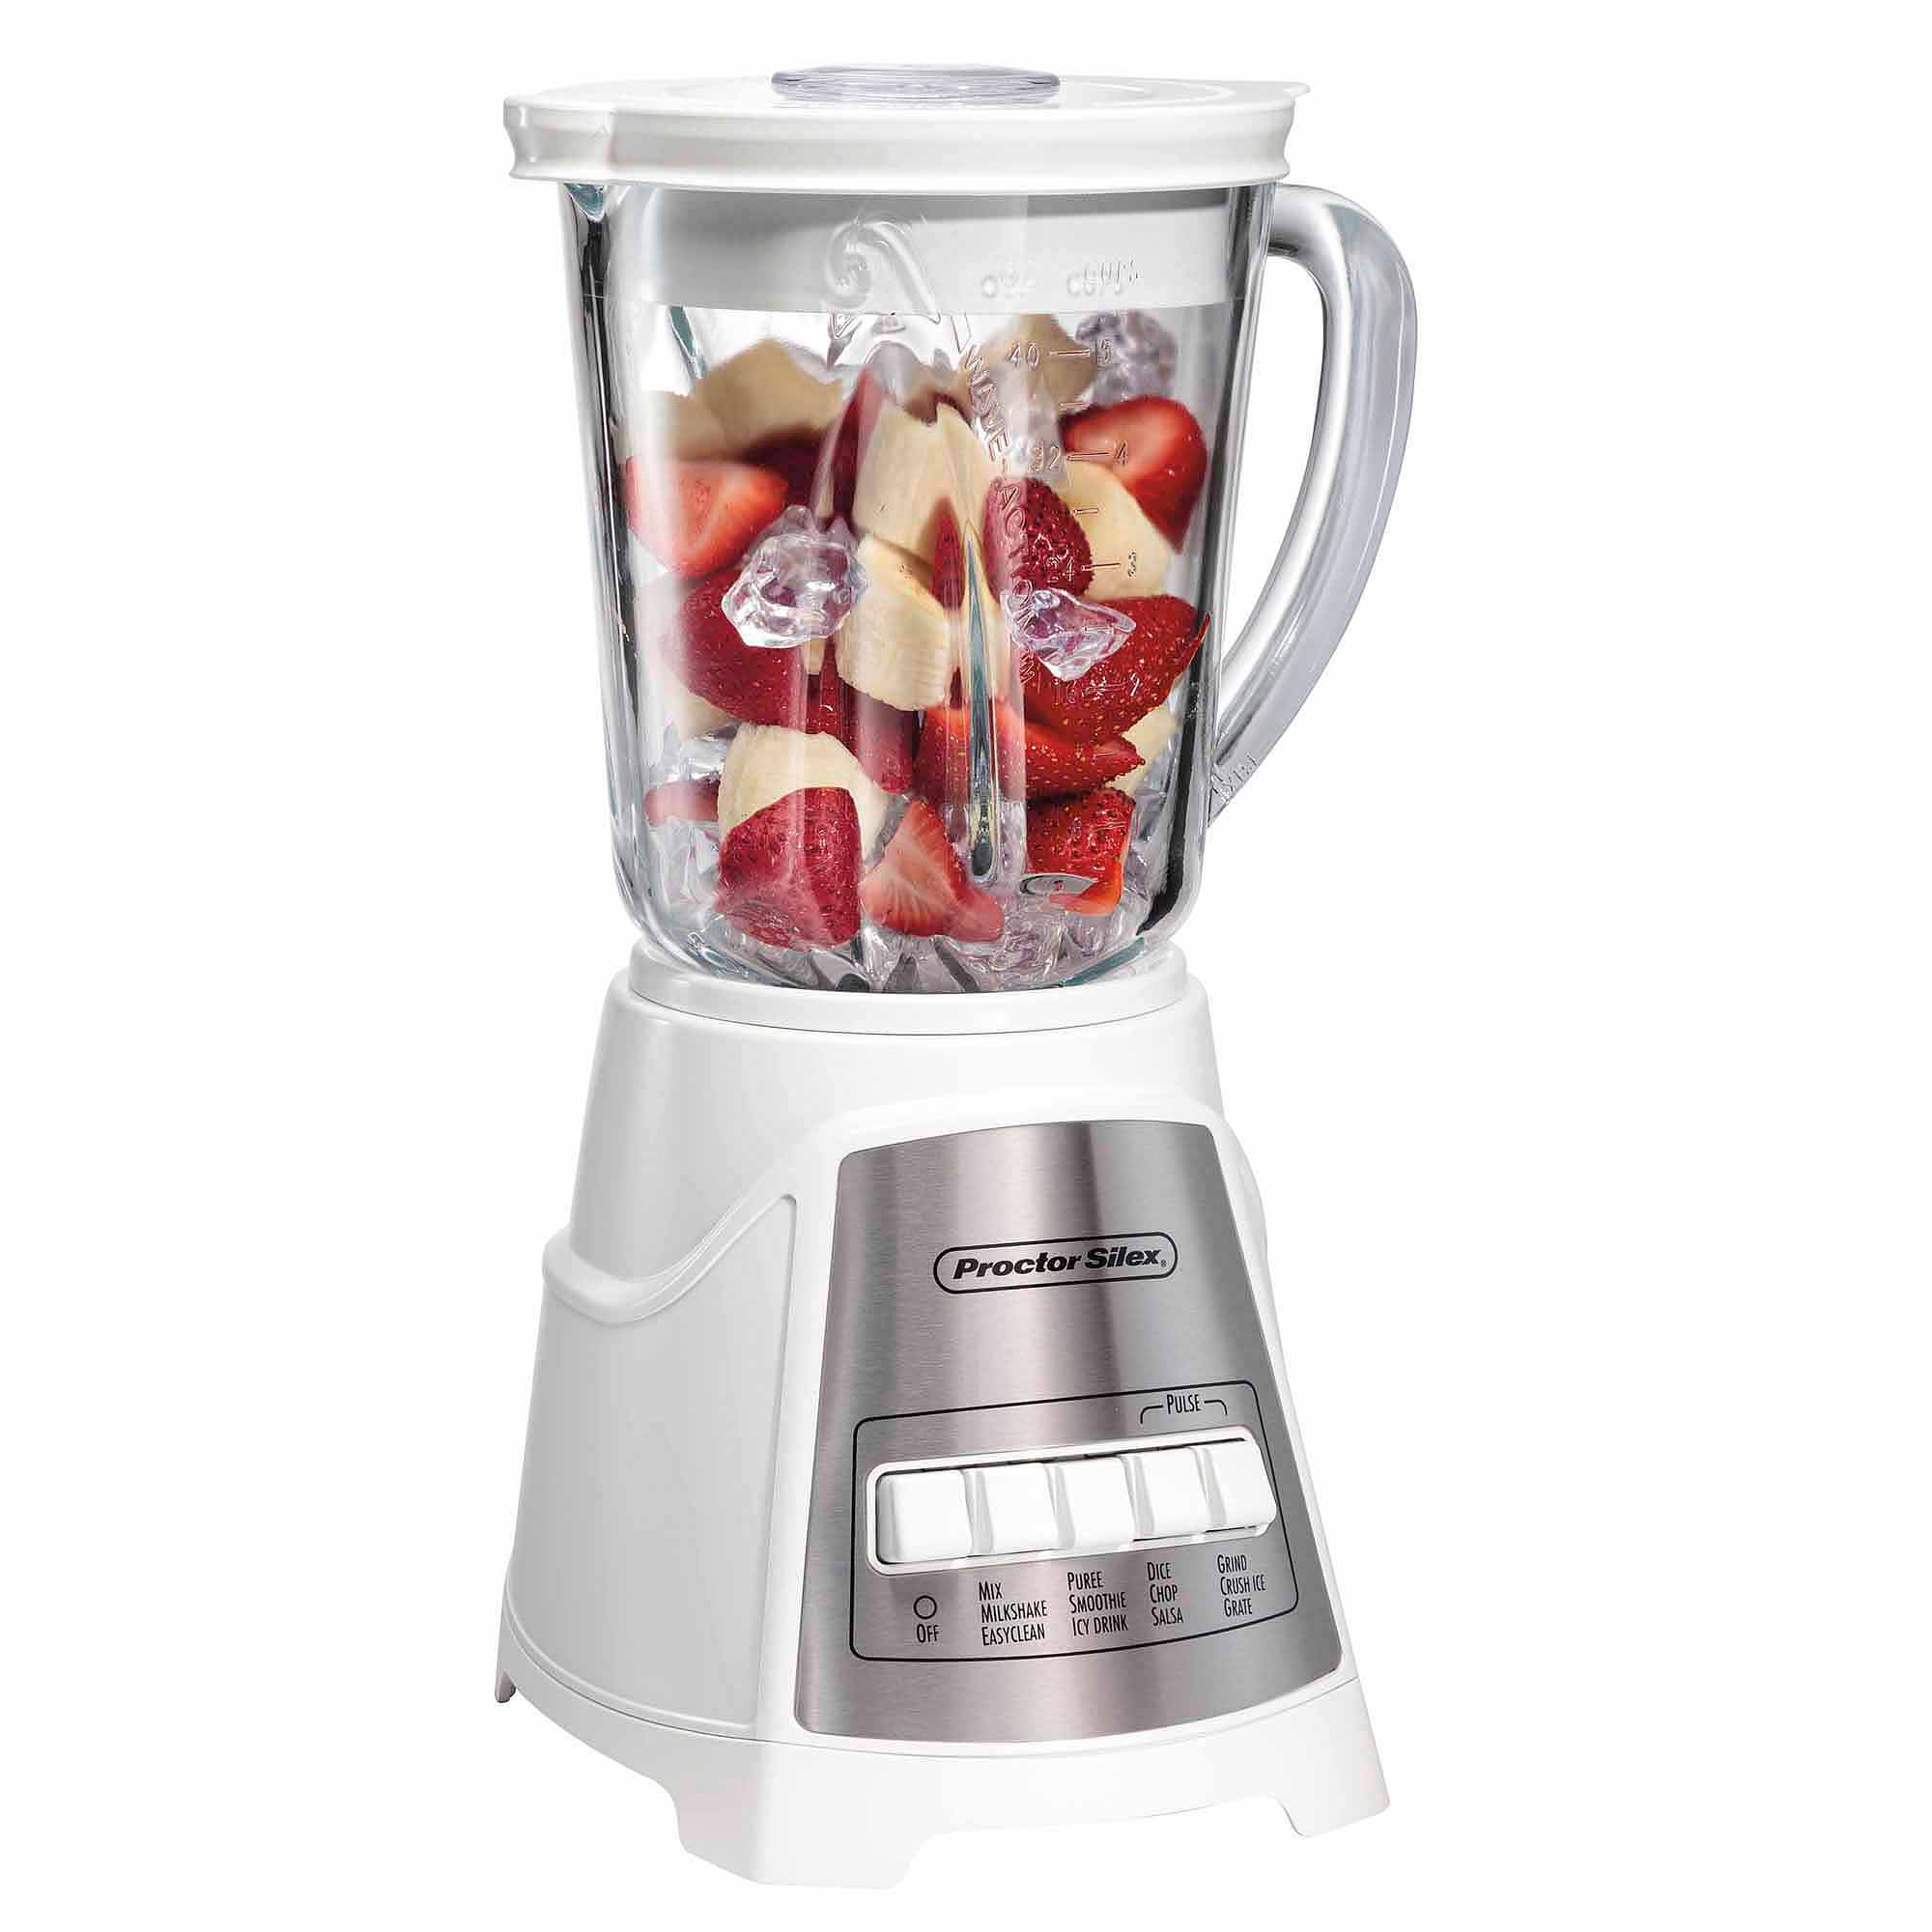 Proctor Silex Multi-Function Blender | Model# 58141A